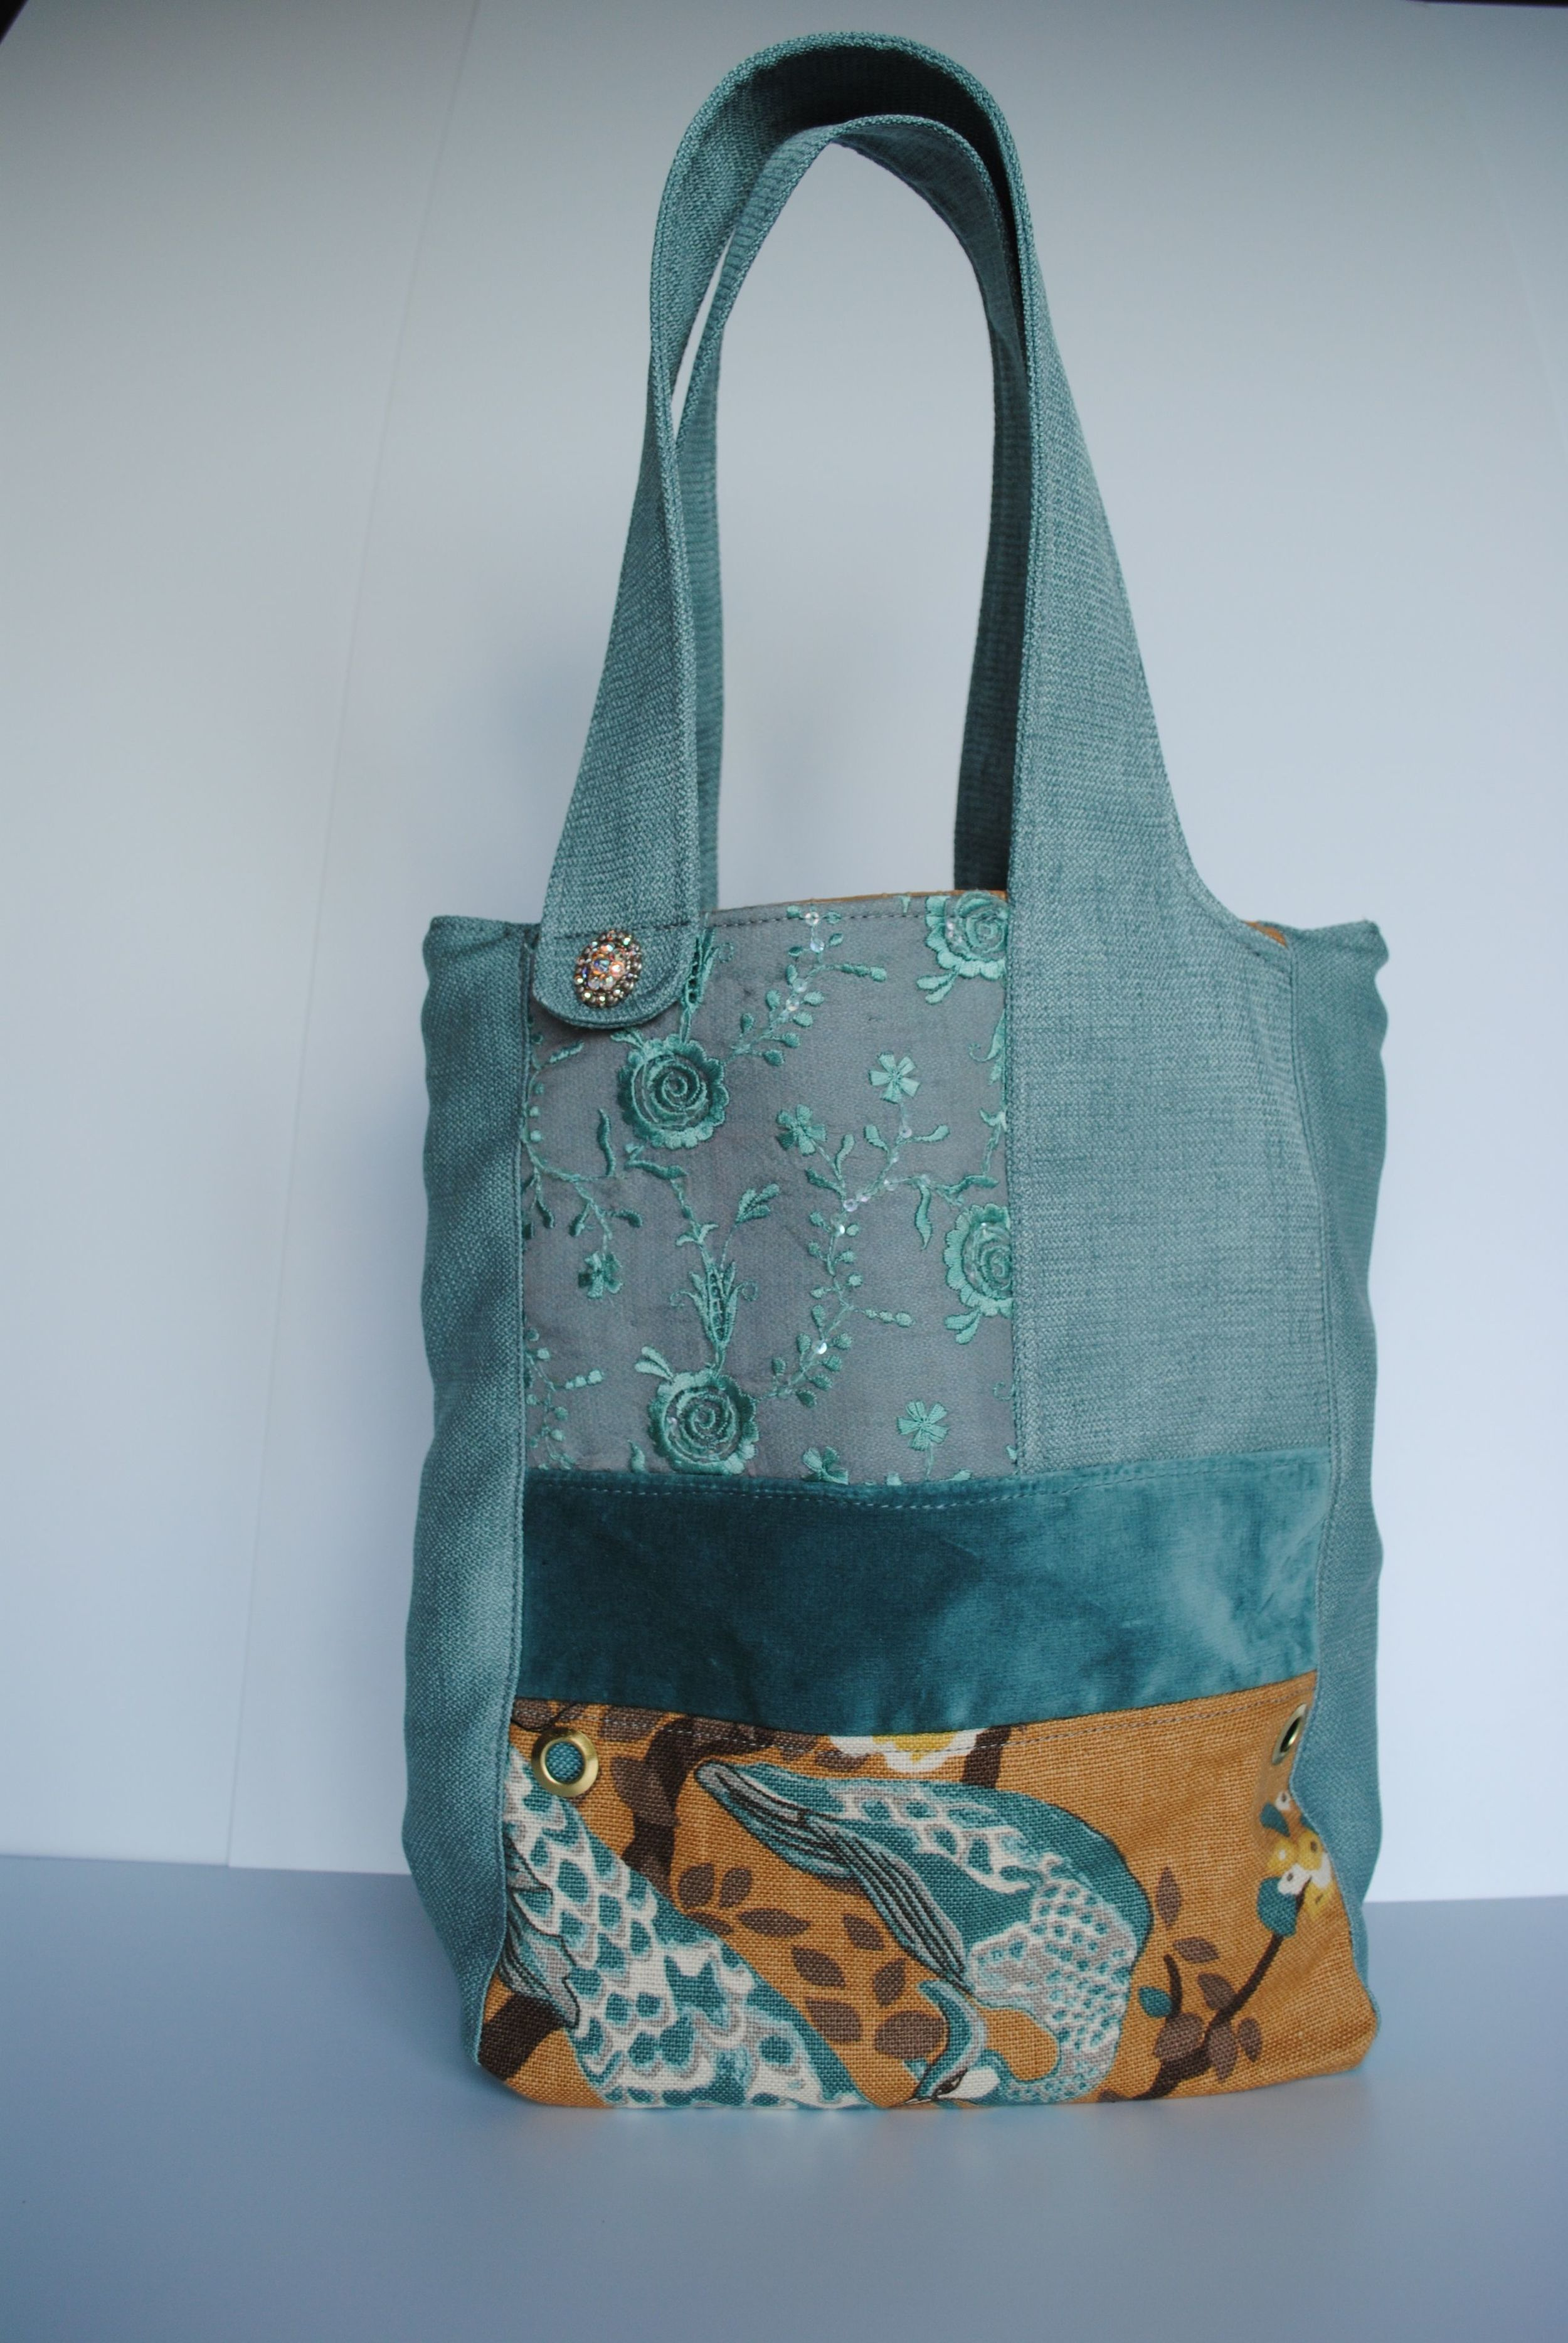 Peacock 6 Pockets Tote Bags